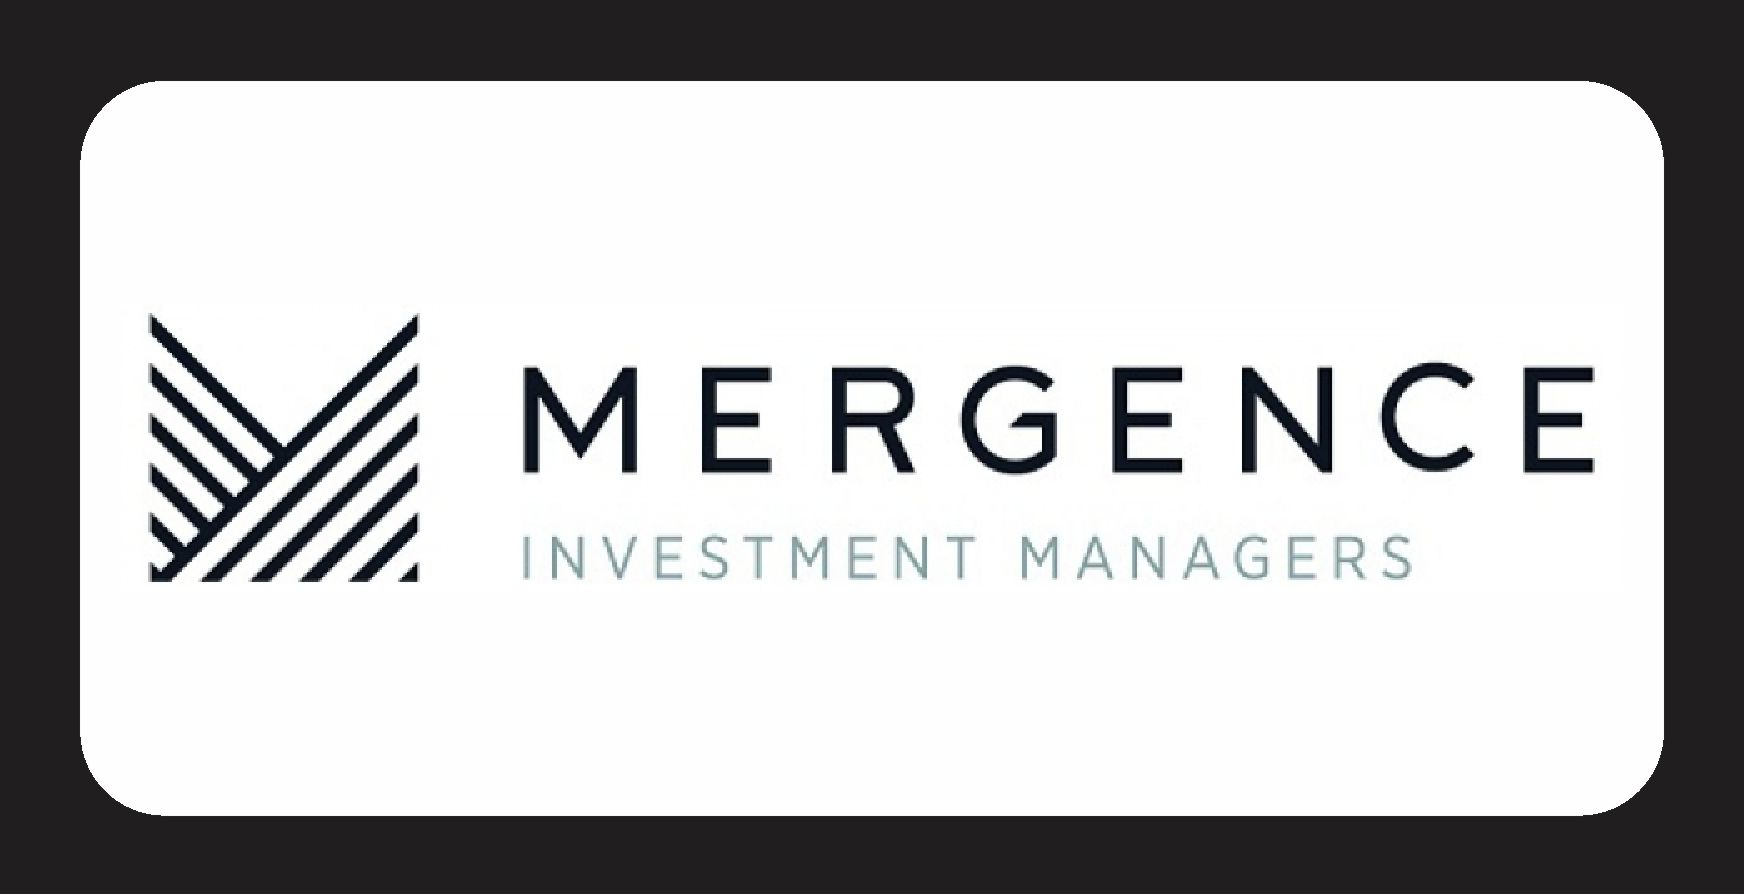 Mergence_Investment_Managers